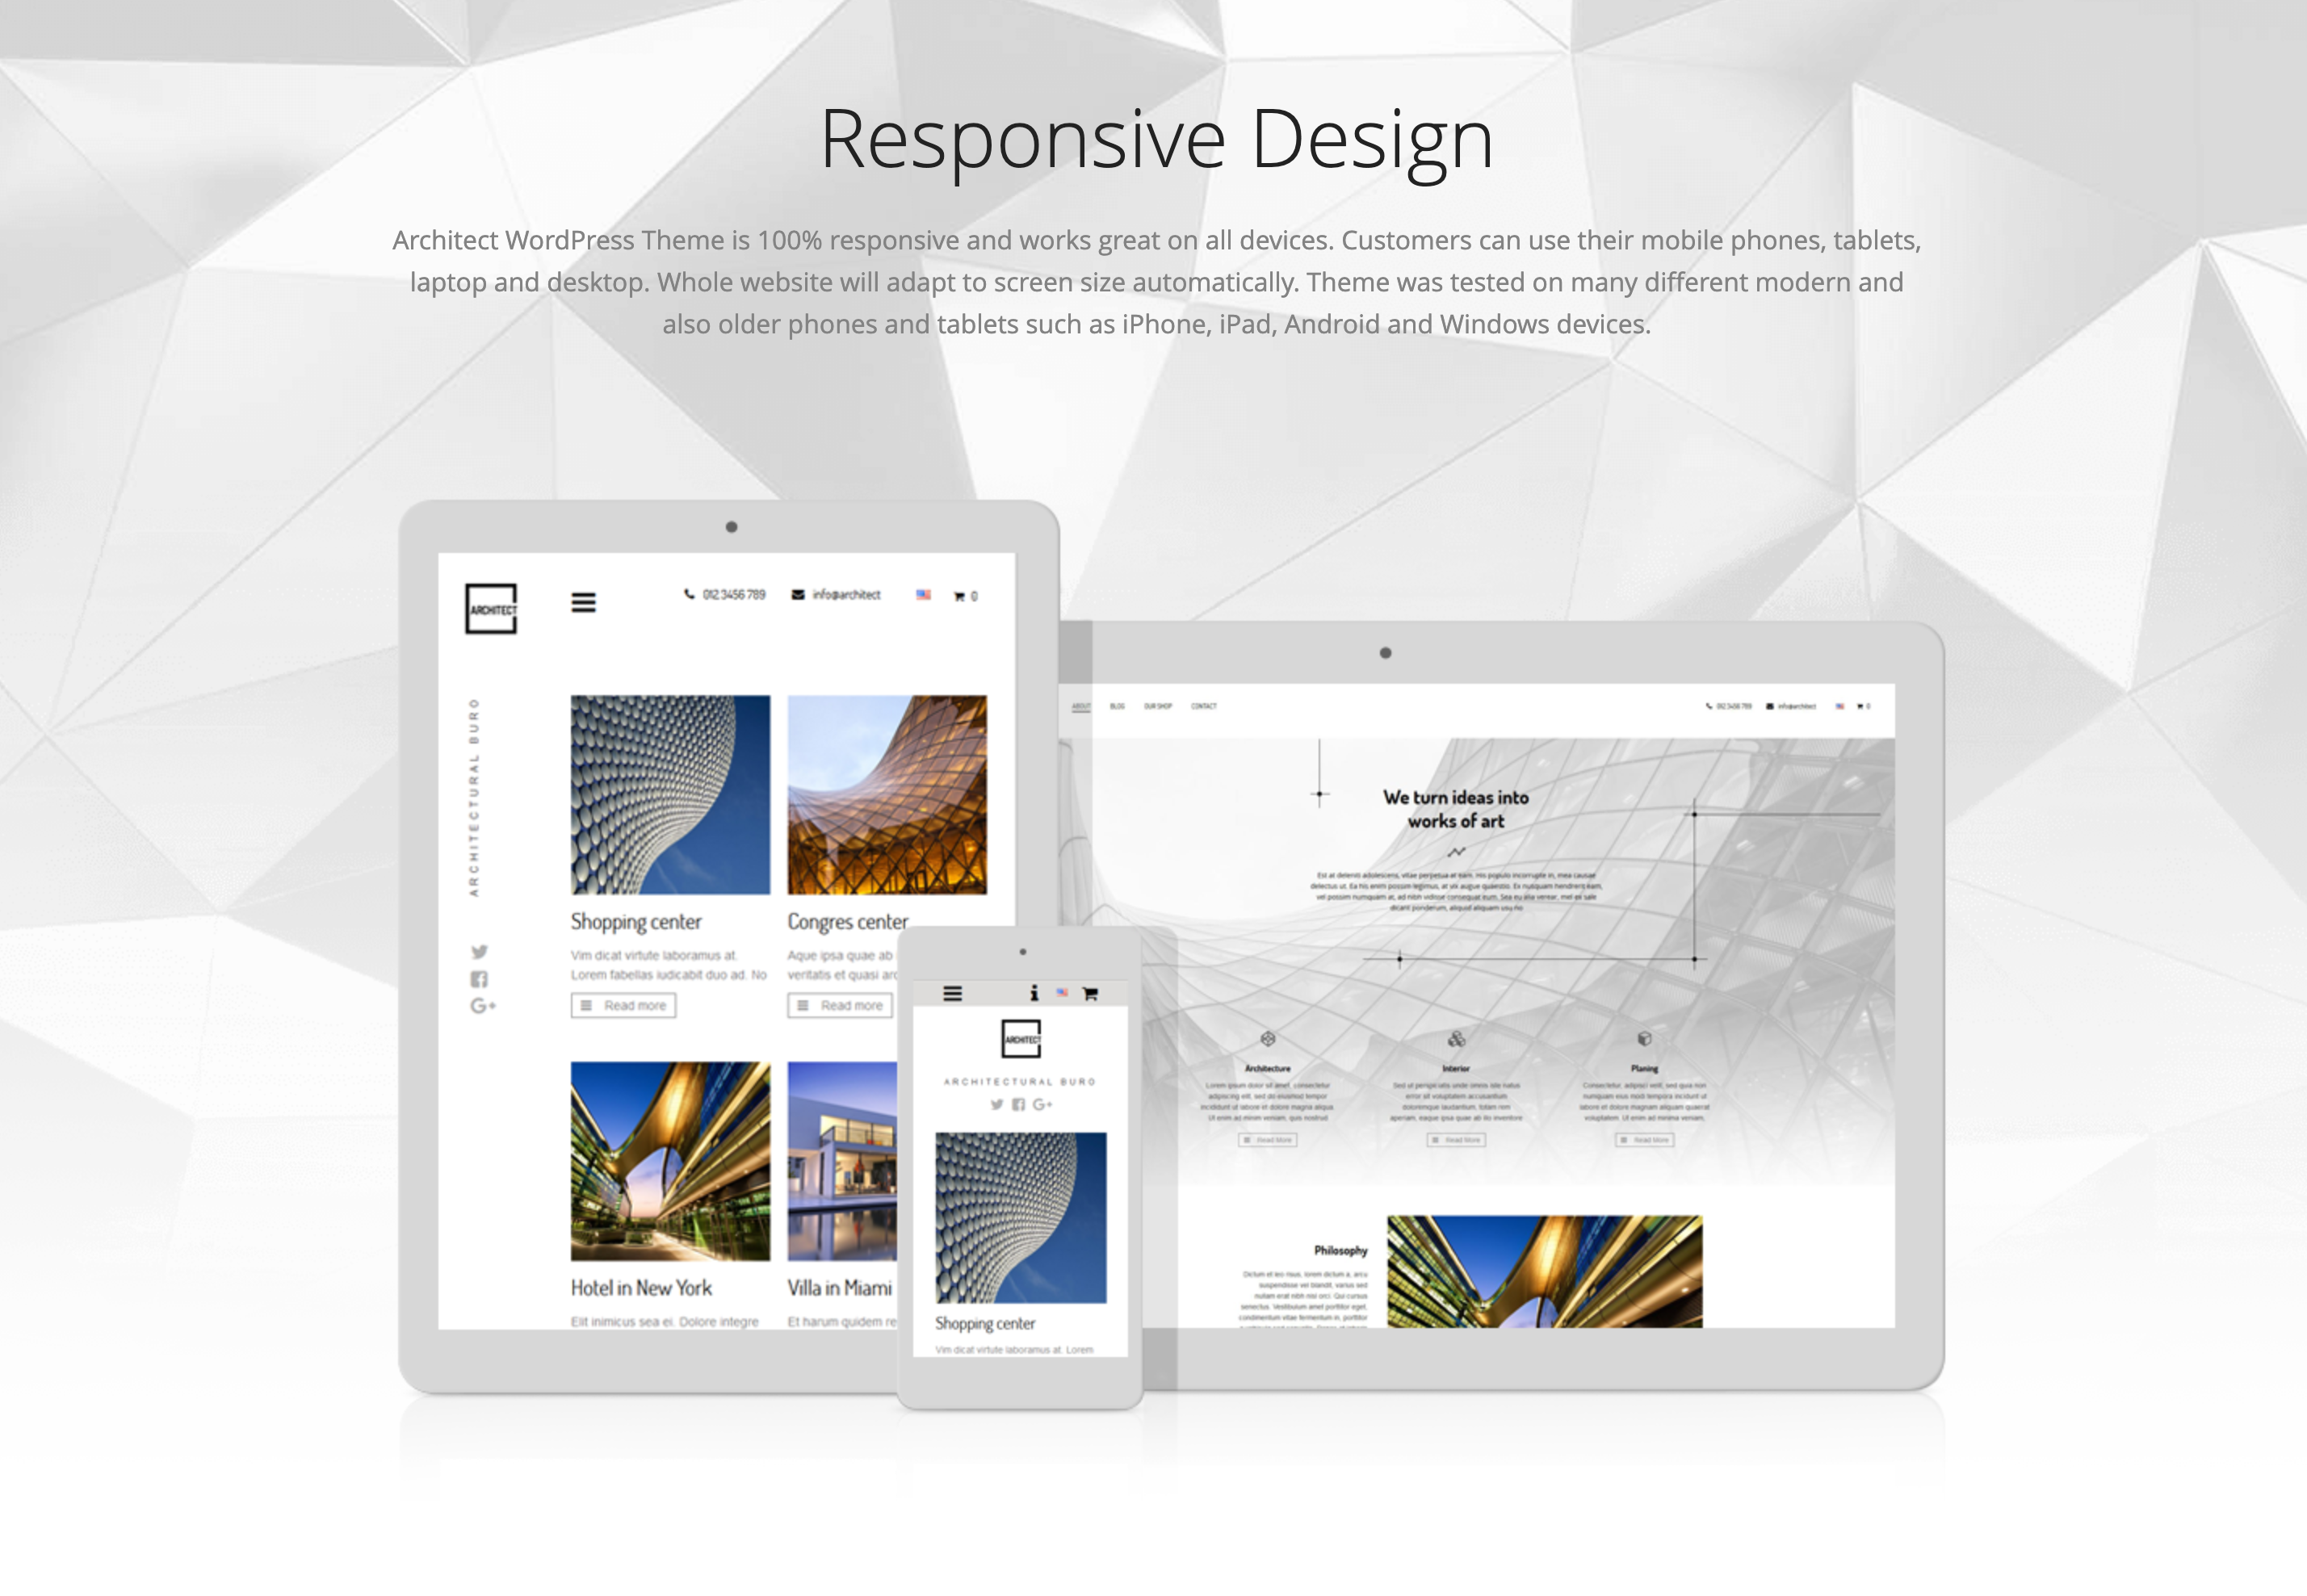 Responsive desigh of Architect WordPress theme